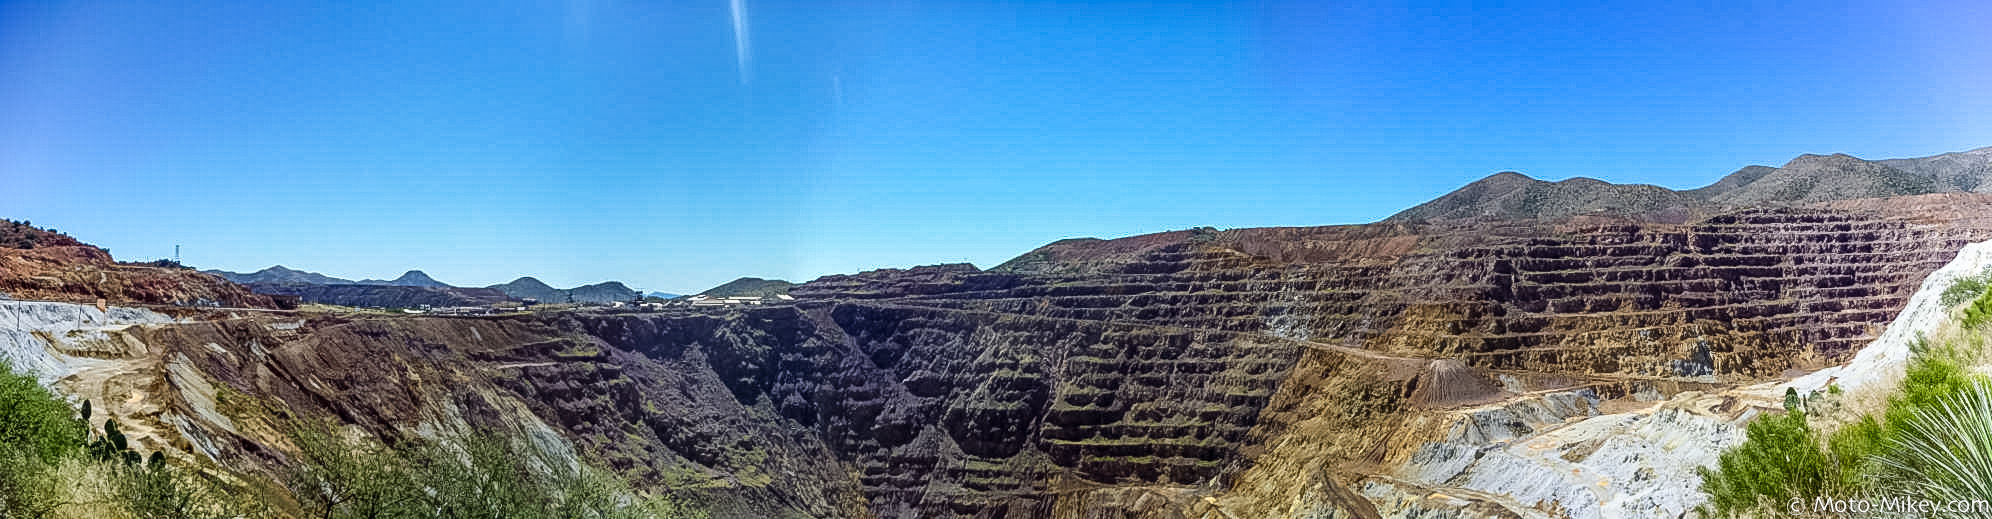 Panorama of a Copper Mine near Bisbee, Arizona